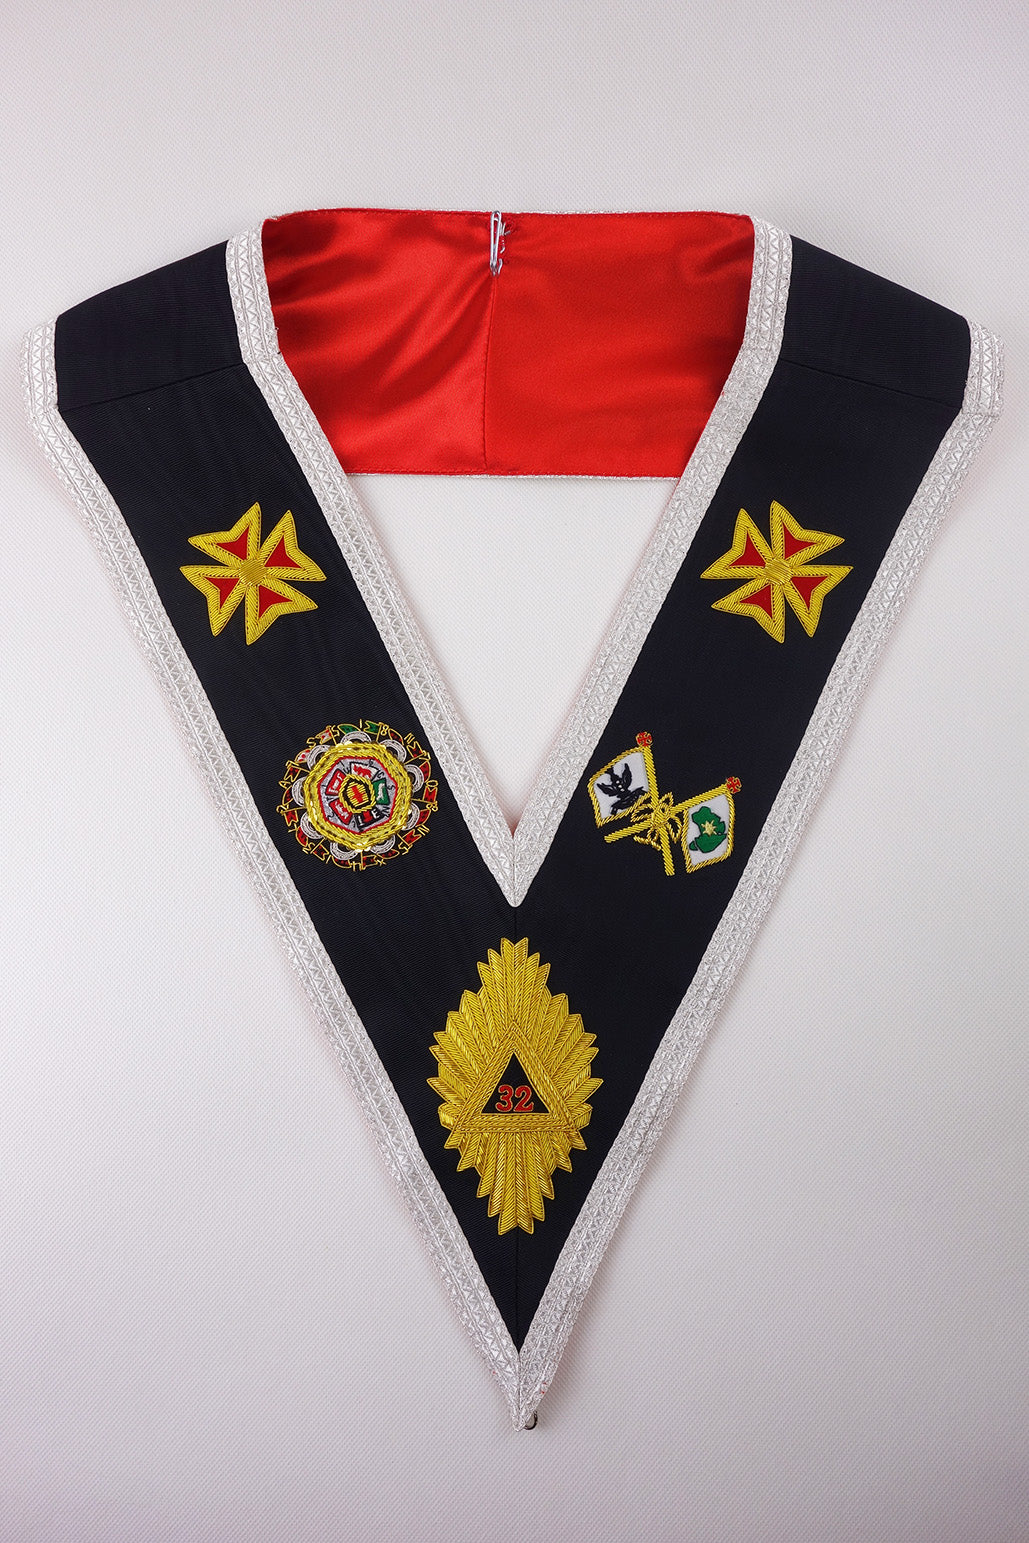 Australian Constitution 32nd Degree Collar